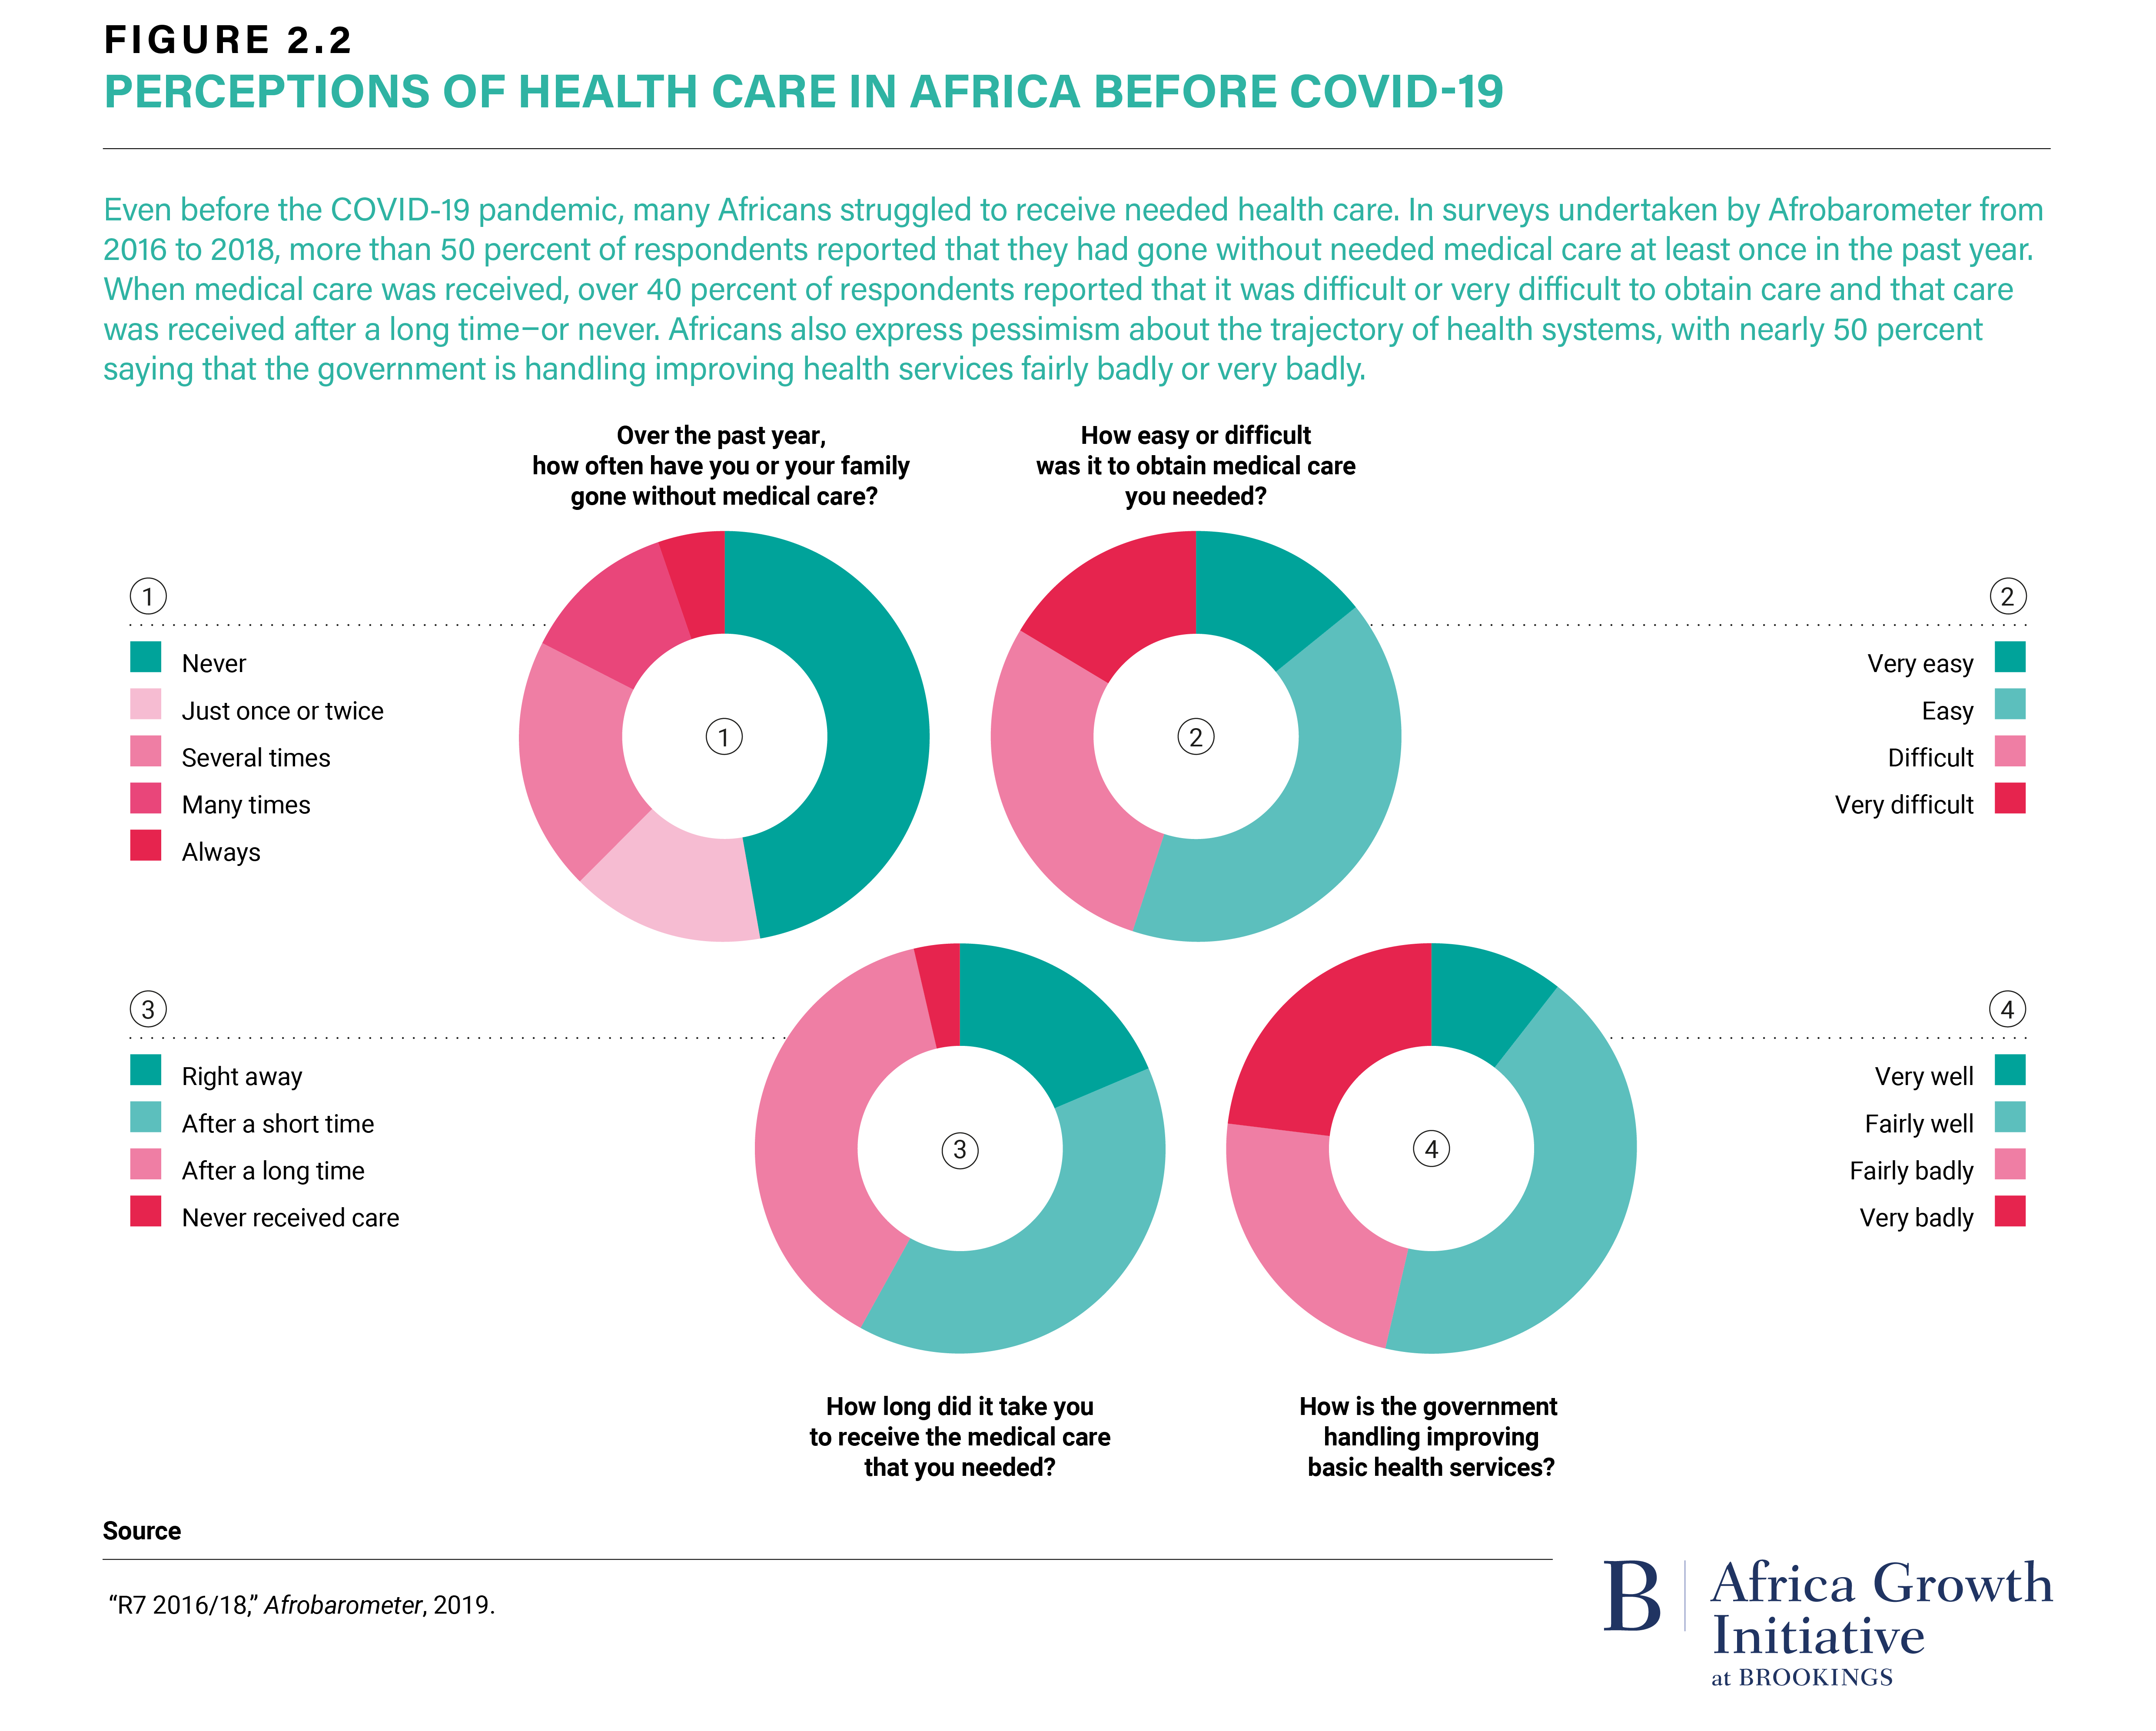 Figure 2.2 Perceptions of Health Care in Africa Before COVID-19